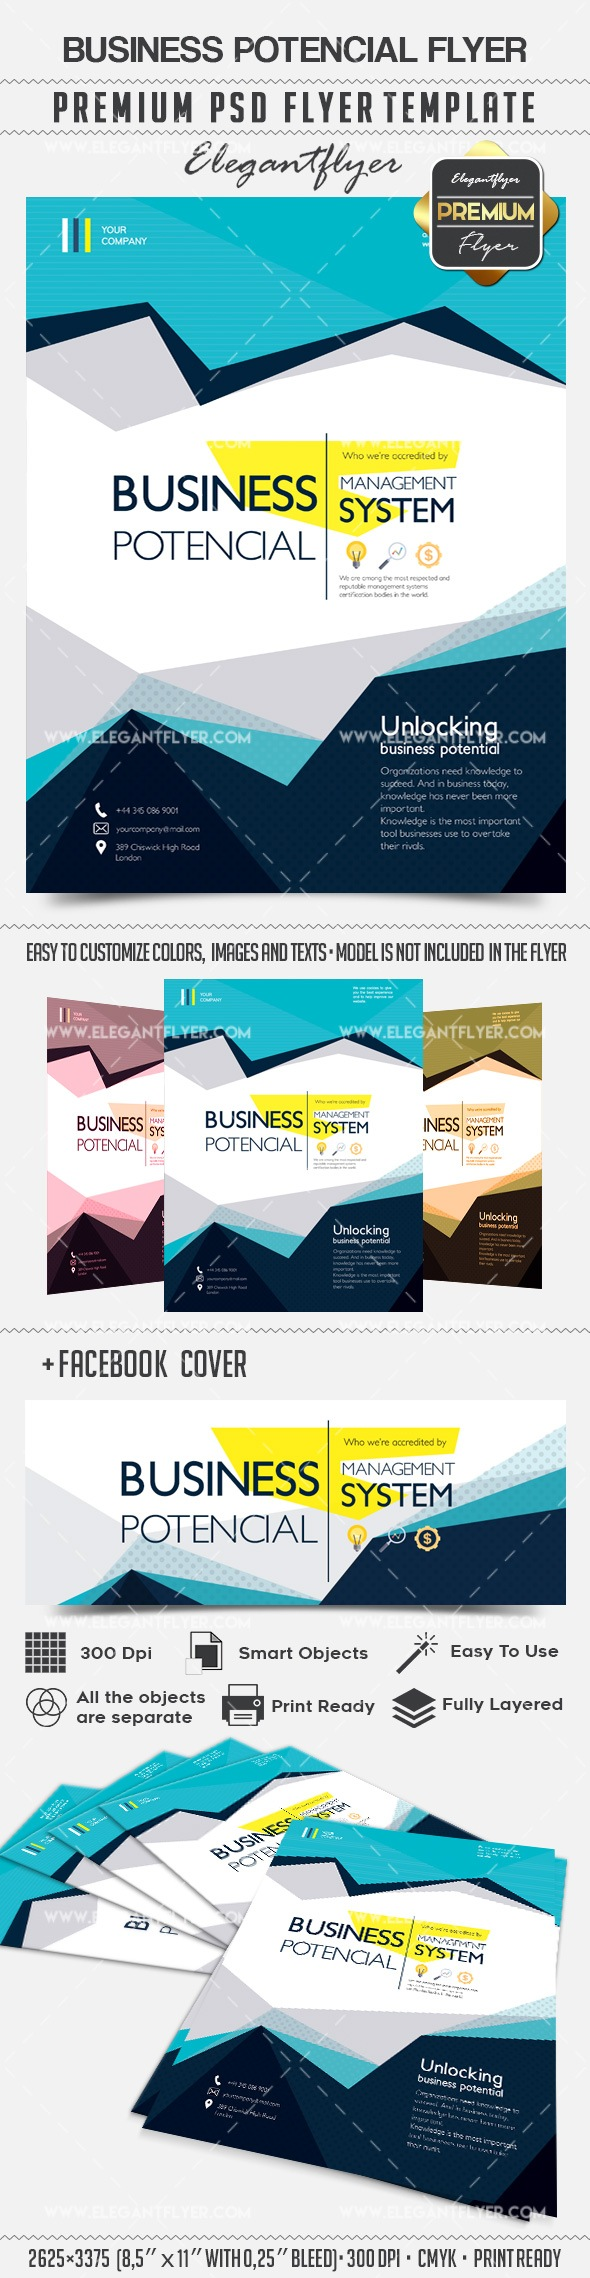 Business Potencial – Flyer PSD Template